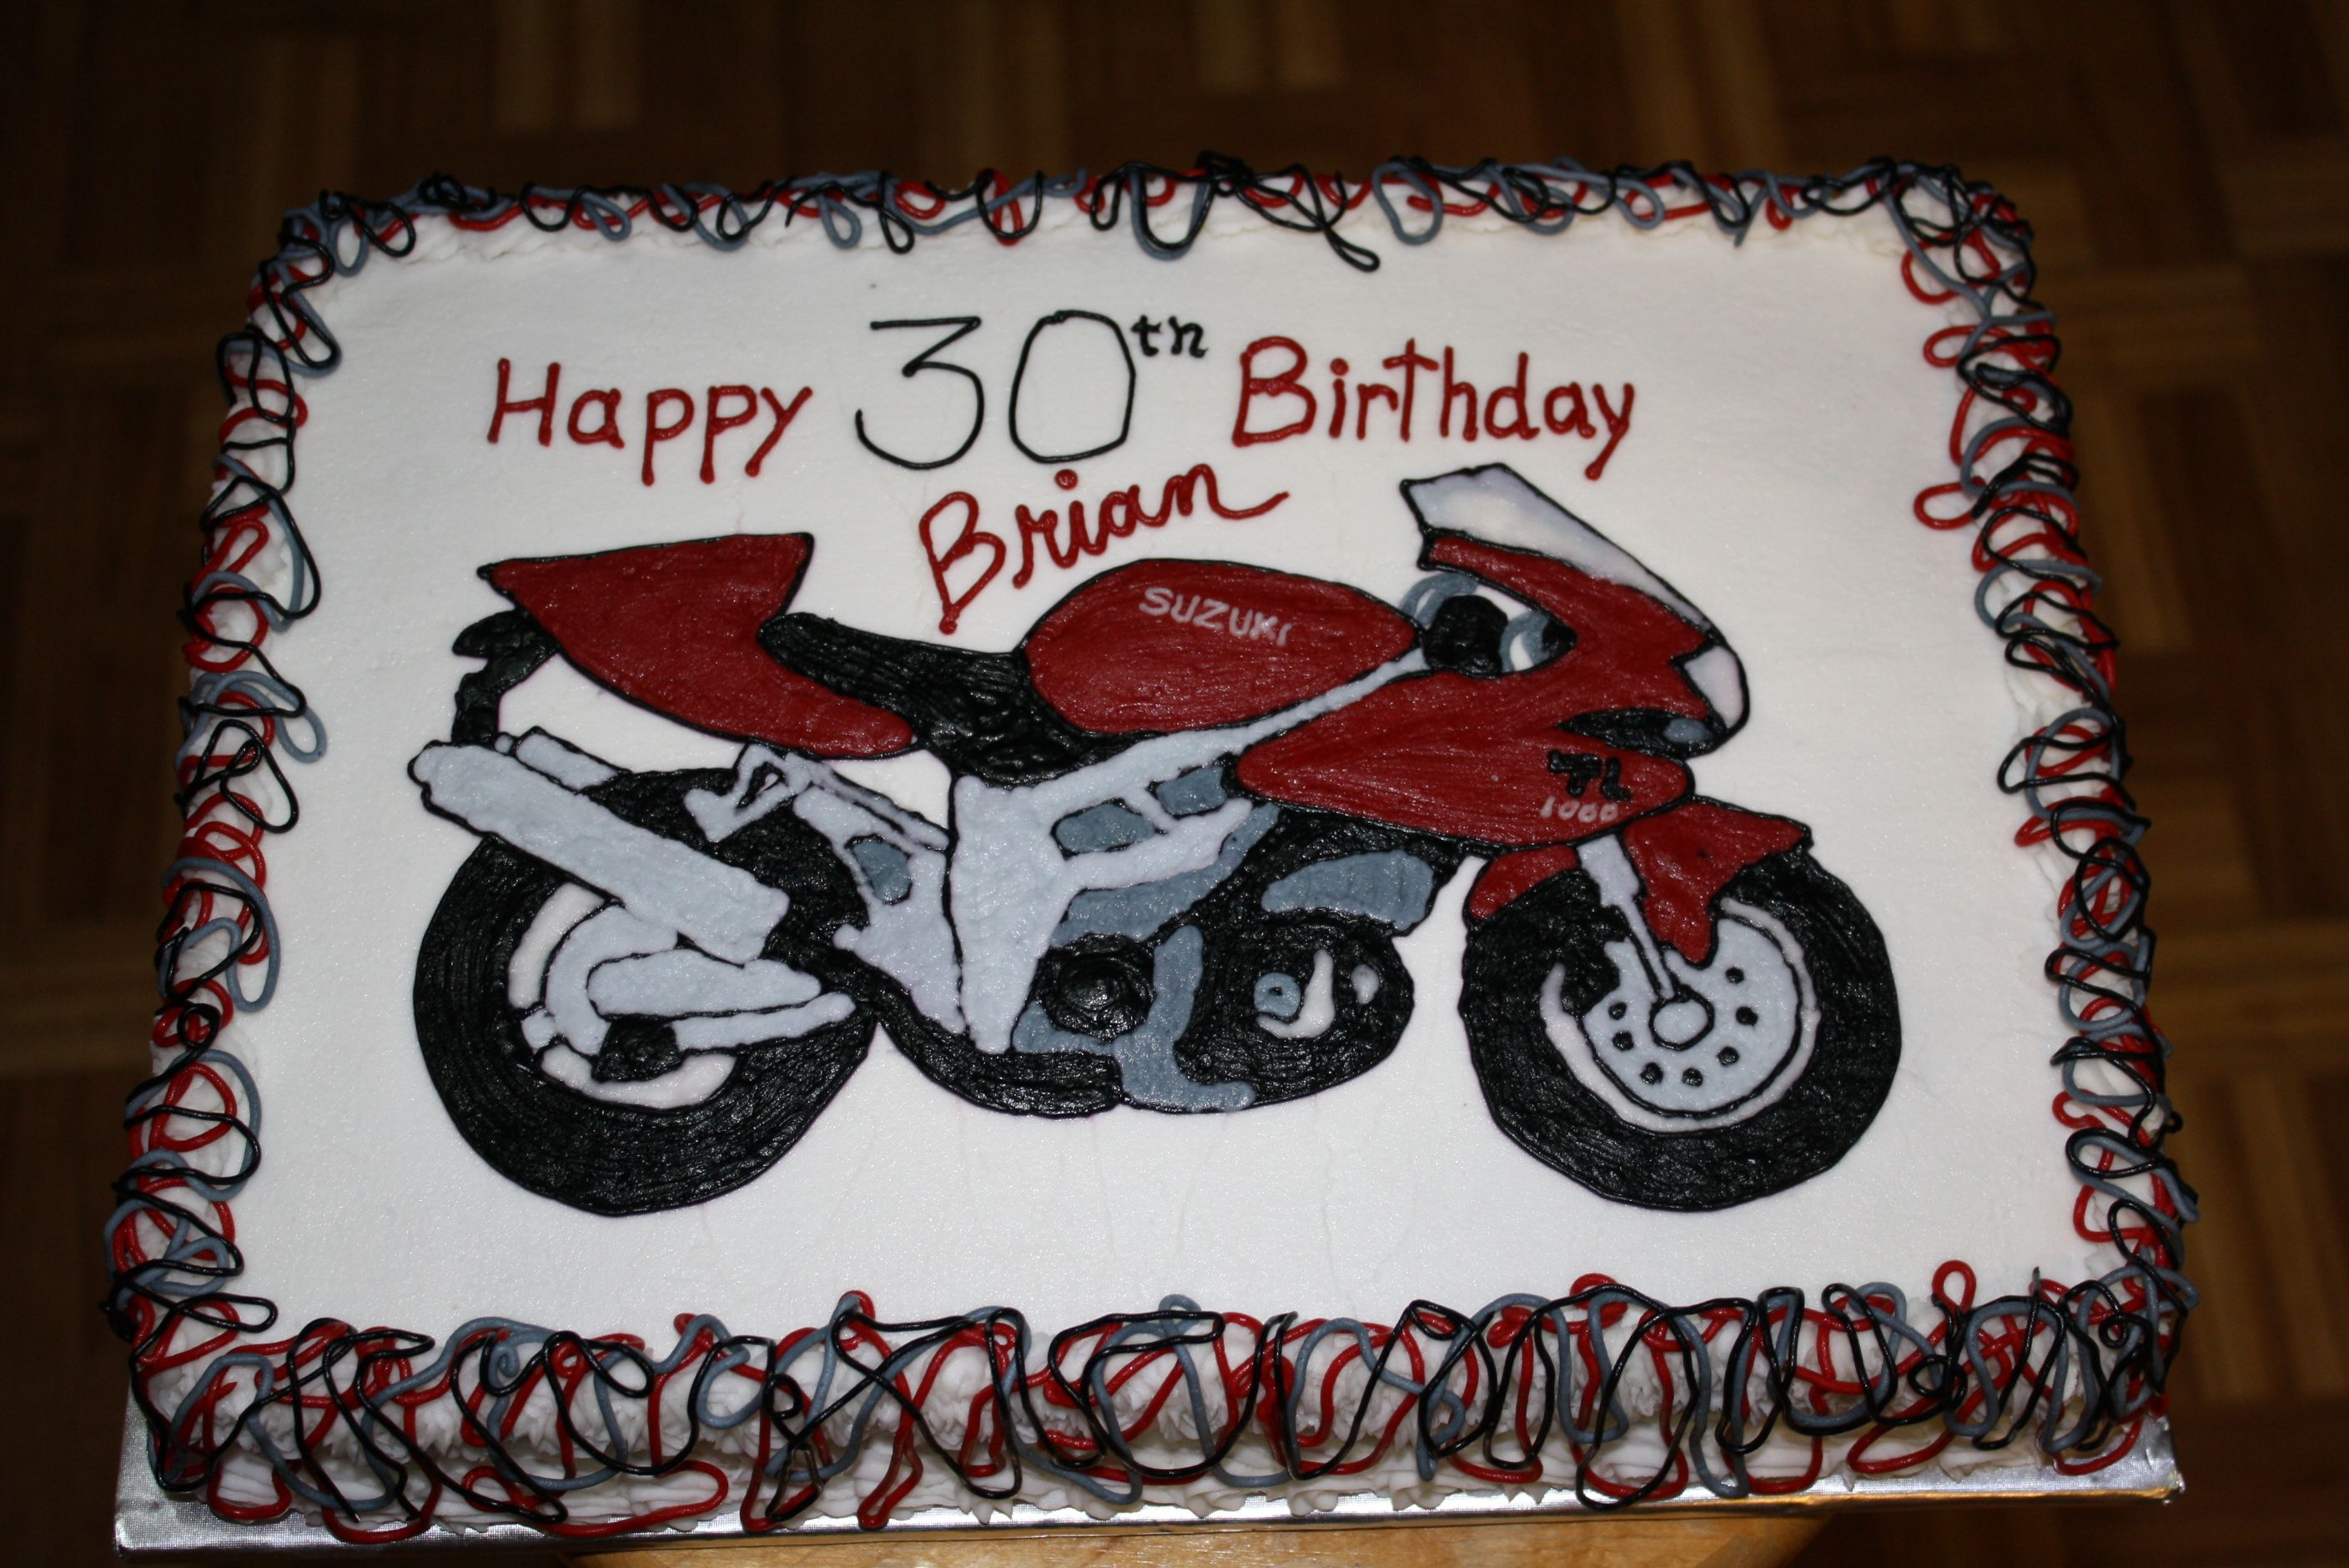 Suzuki Motorcycle Cake Motorcycle Cake Motorcycle Party